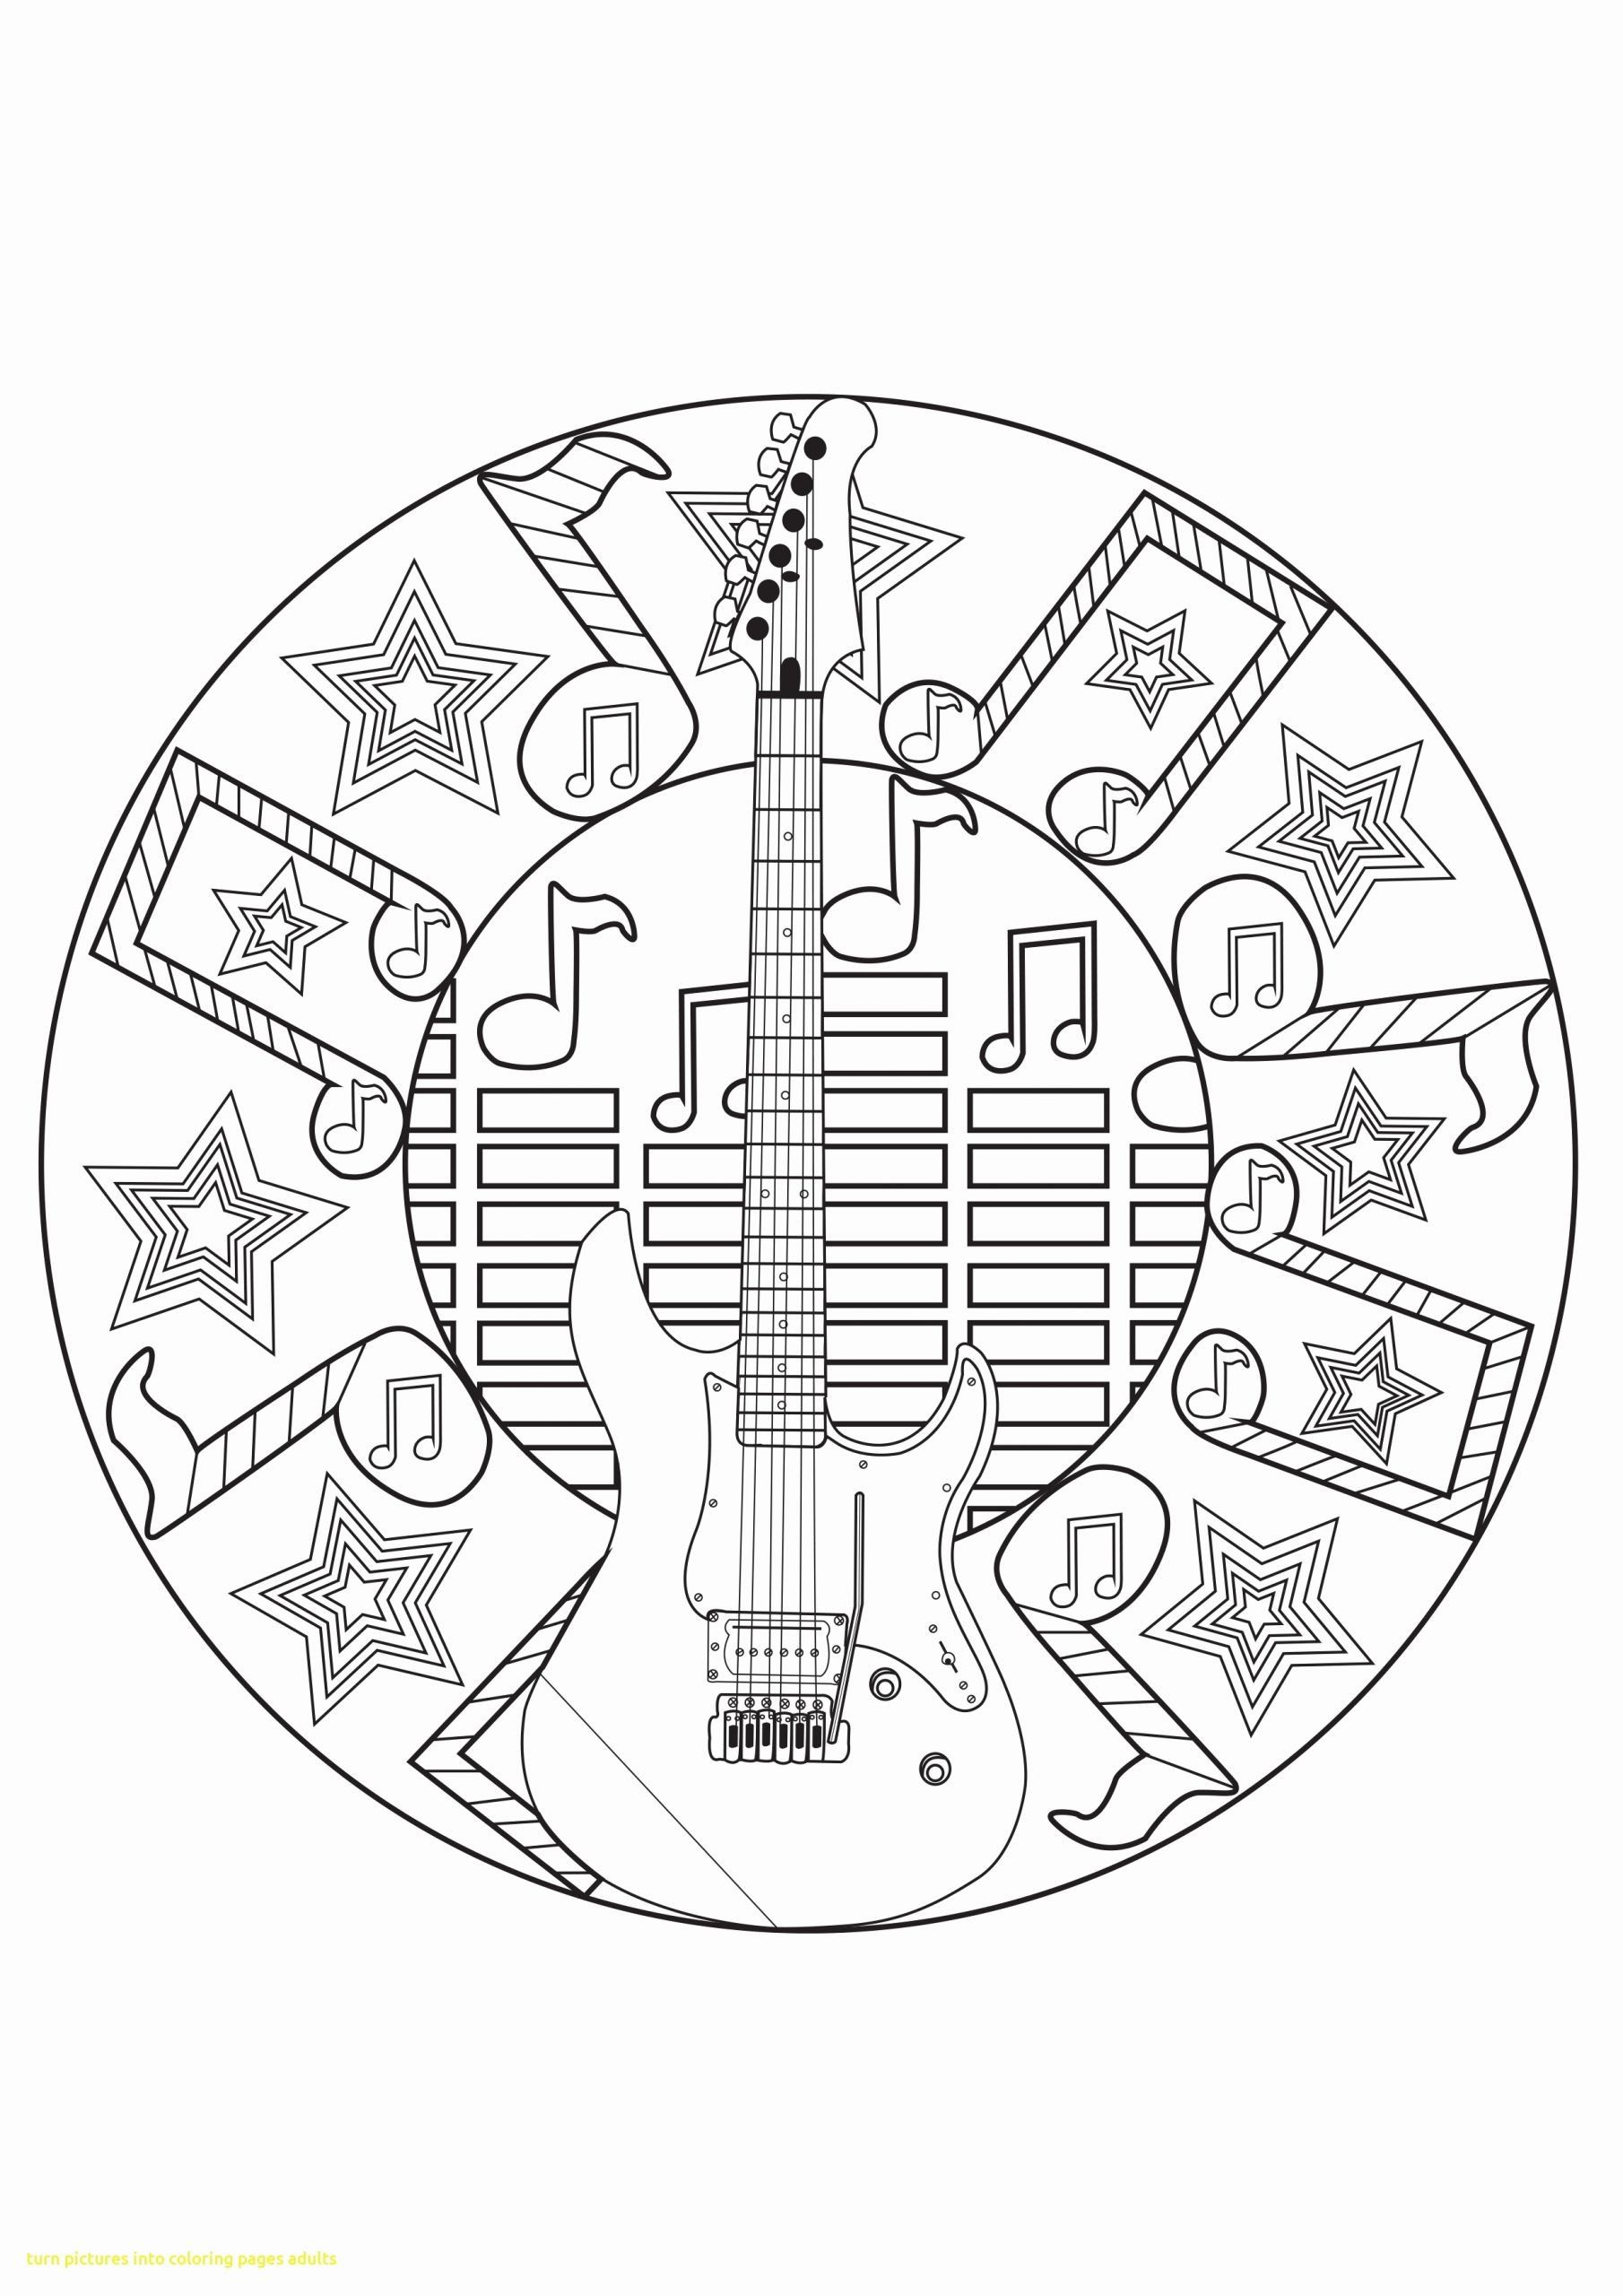 Turn Photo Into Coloring Page Free Online New Turn Image Into Coloring Page At Getcolorings Music Coloring Mandala Coloring Pages Coloring Books